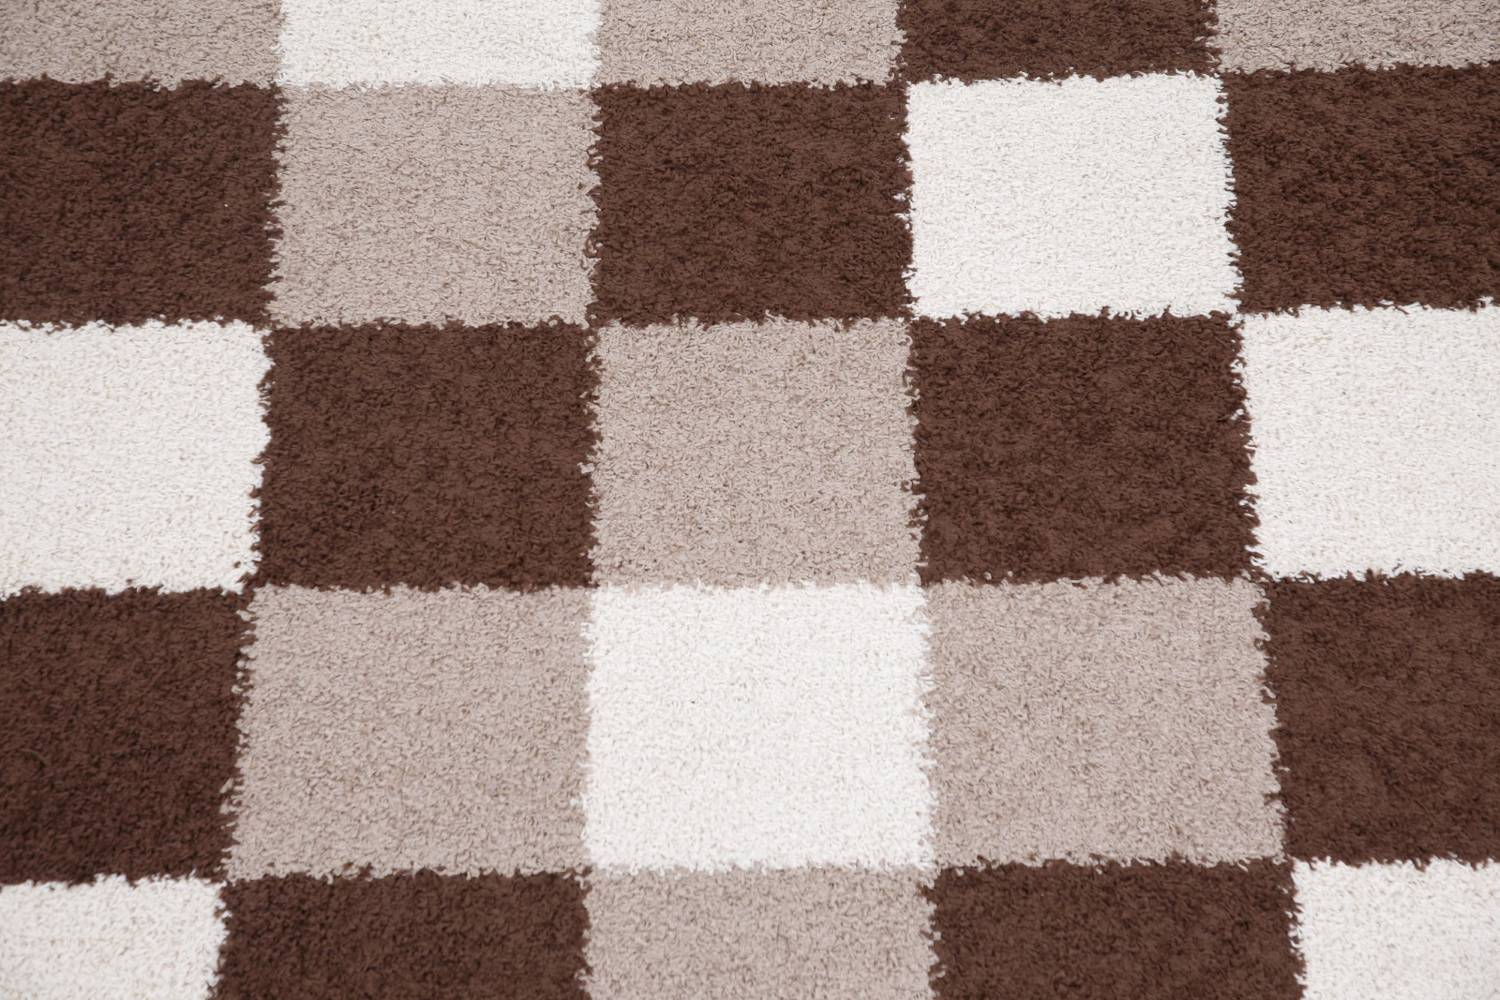 Checked Shaggy Turkish Oriental Rugs image 29